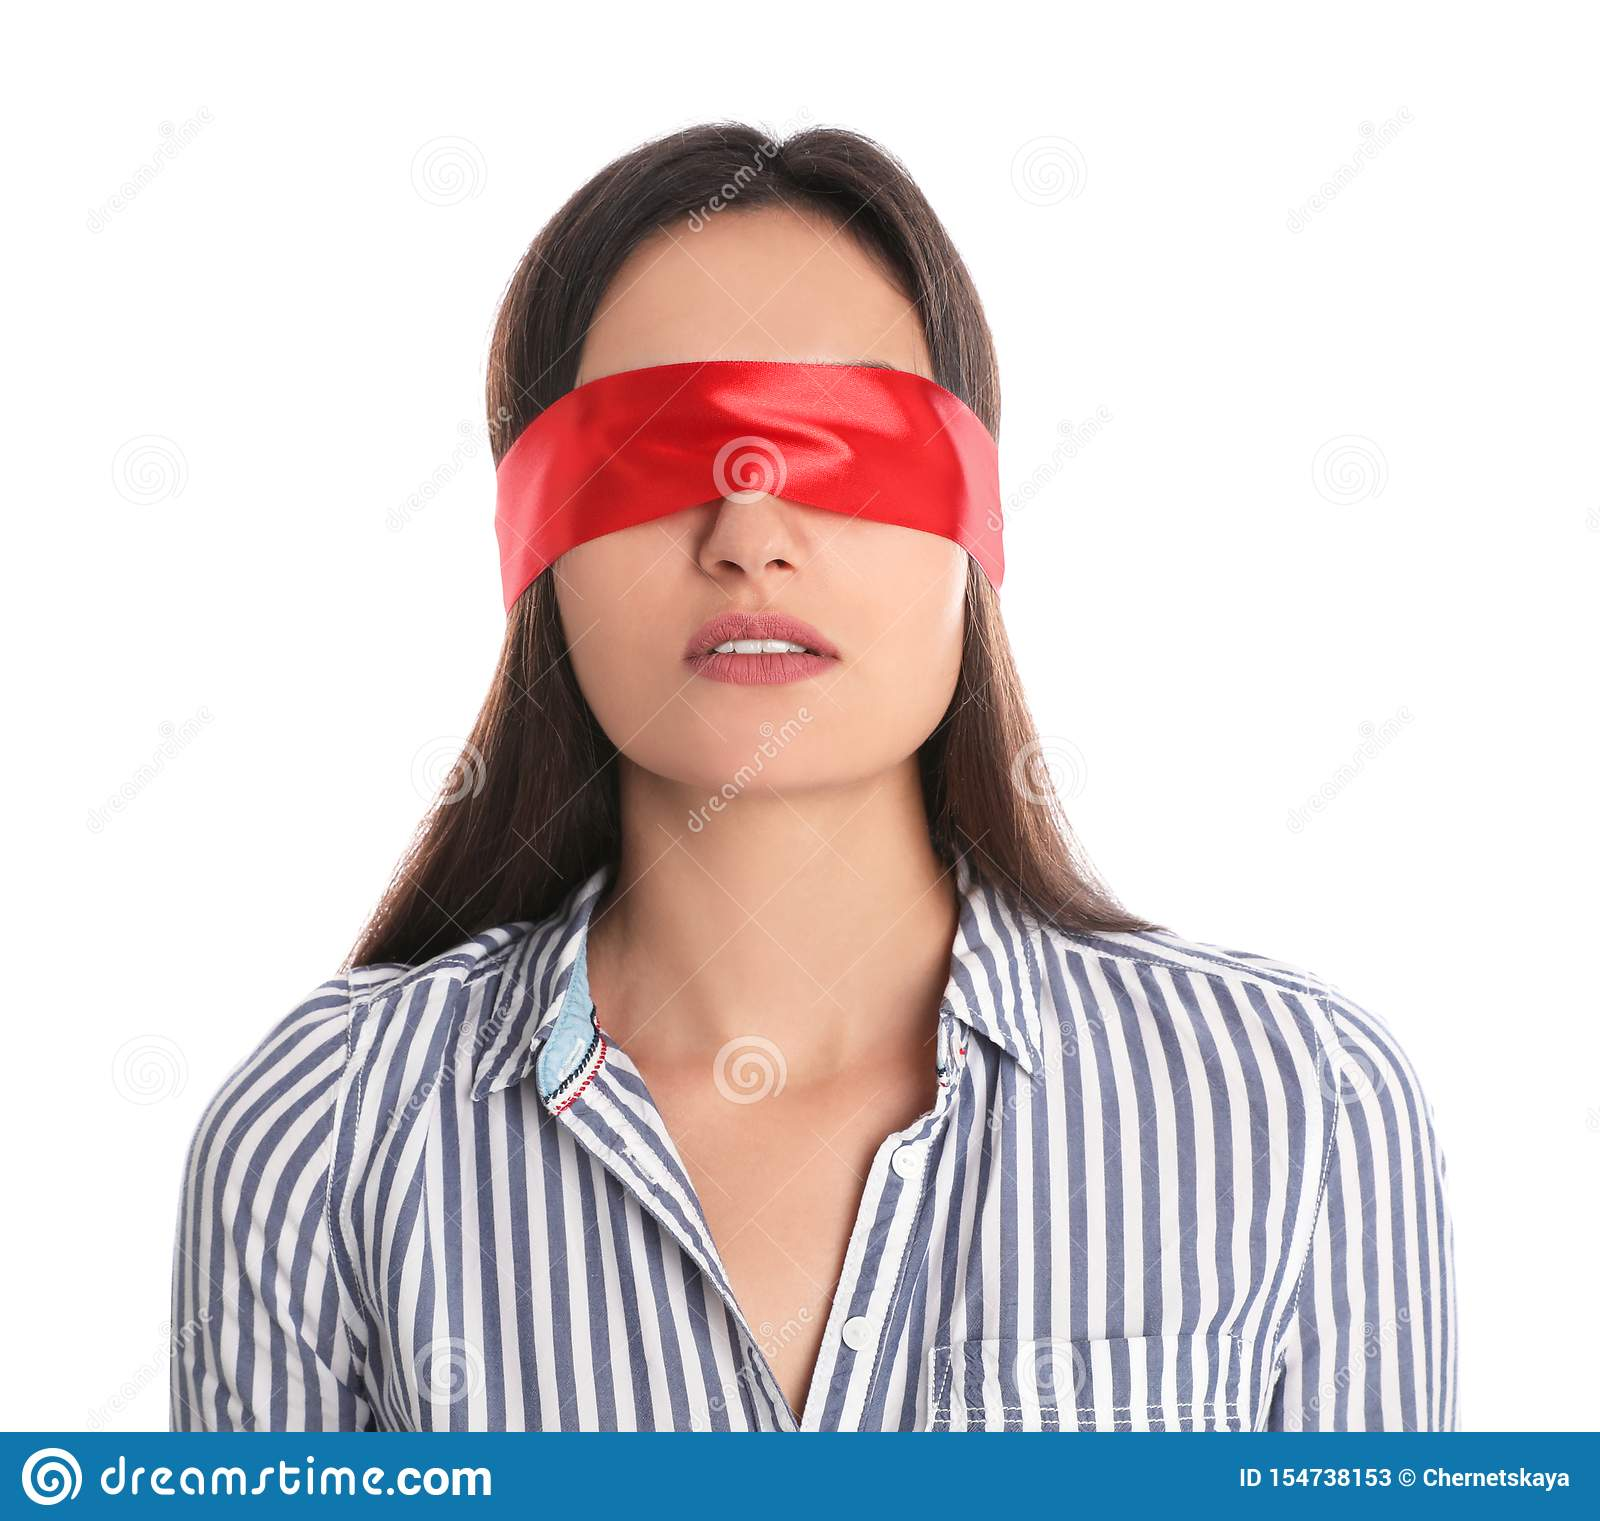 Young woman wearing red blindfold on white